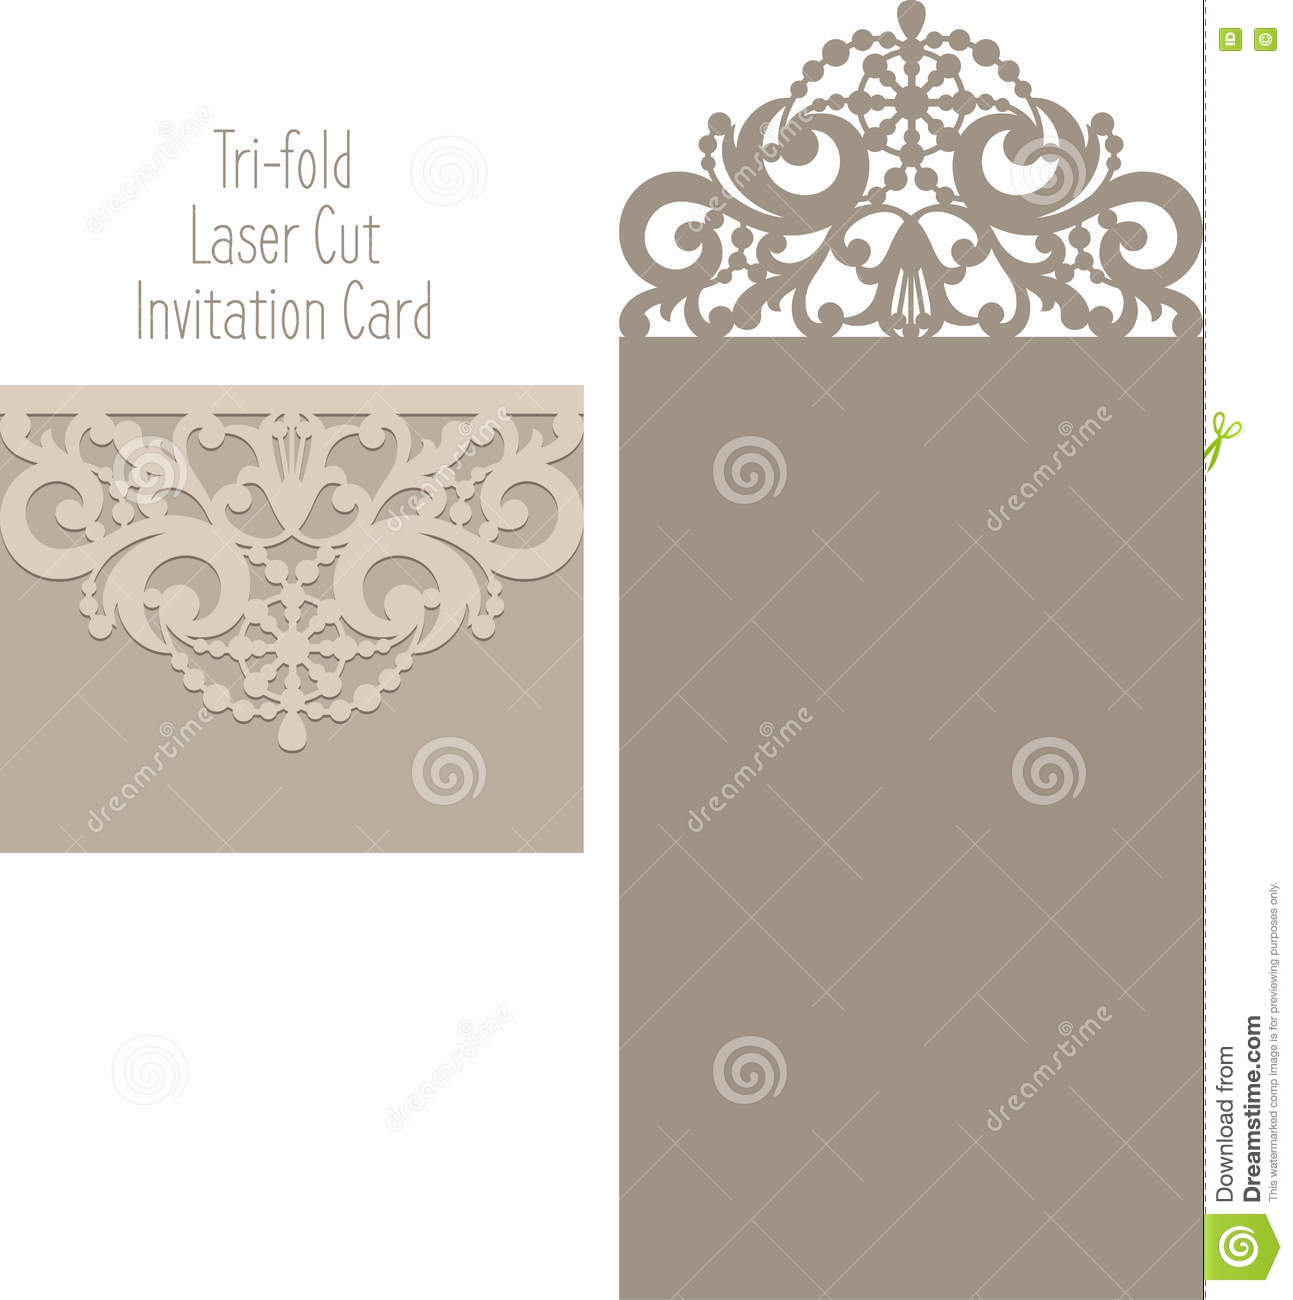 Laser Cut Envelope Template For Invitation Wedding Card. Decor, Abstract.